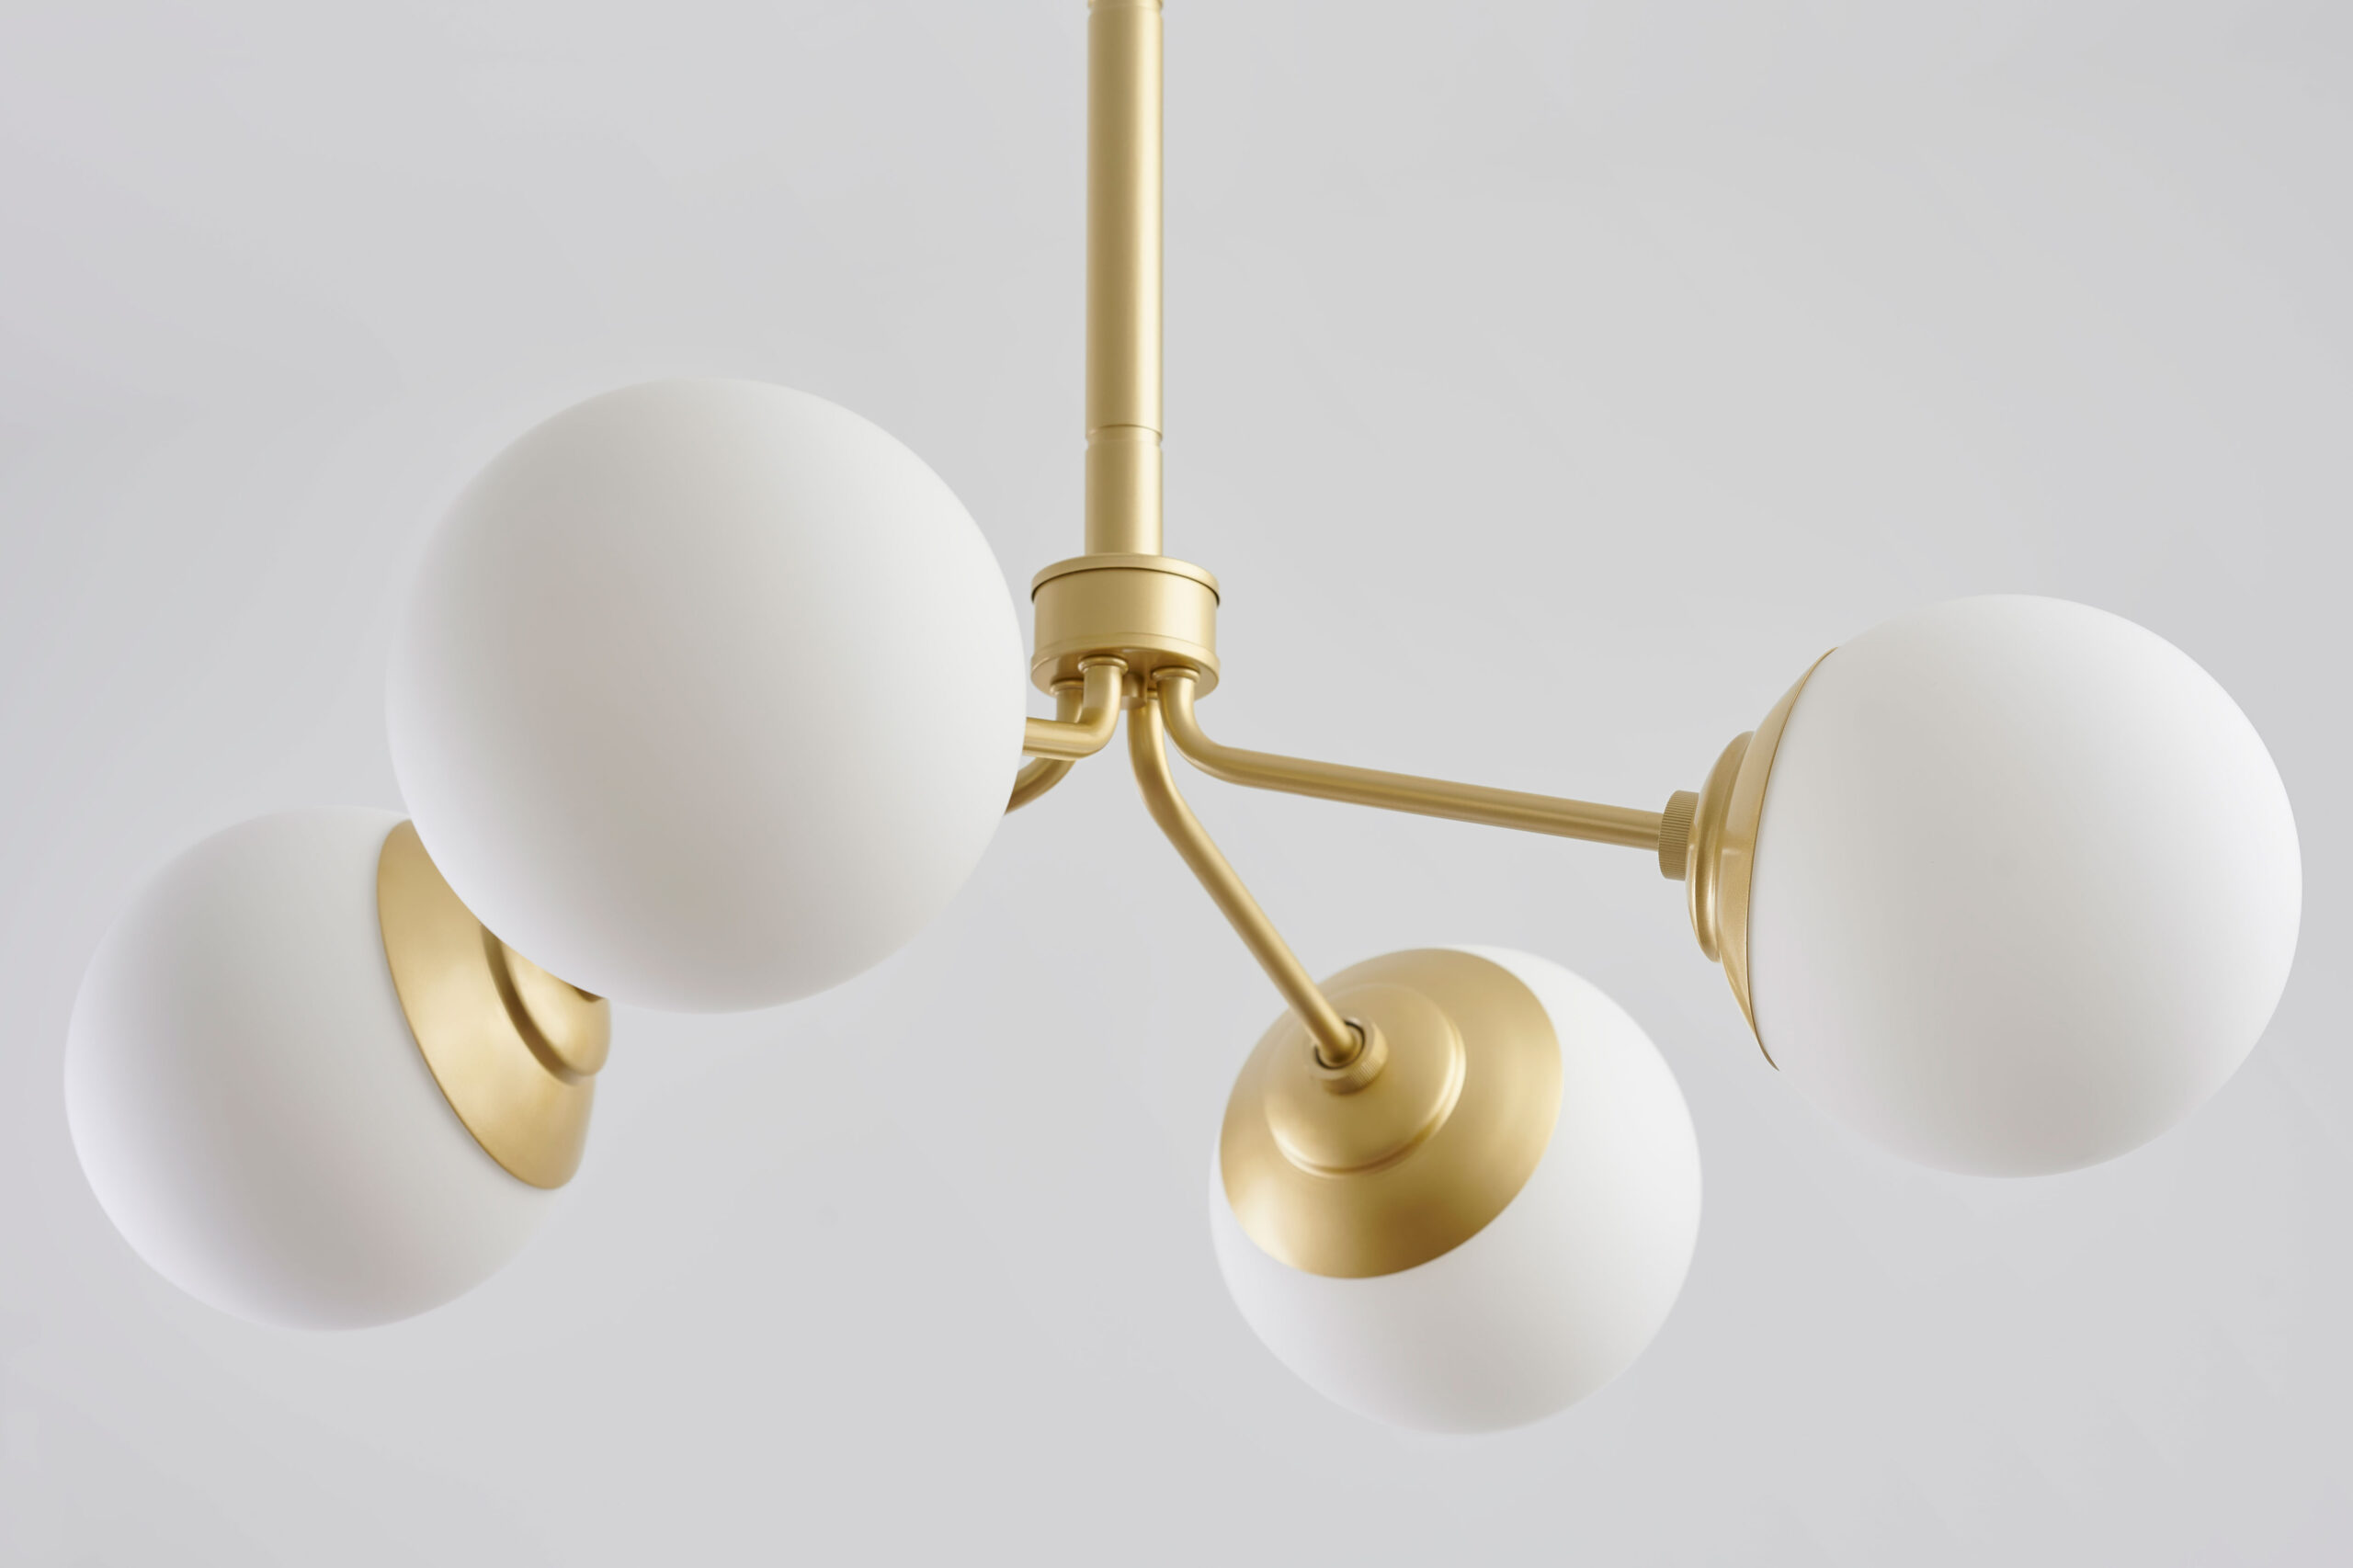 William DeShazer photographs elegant gold and white light fixture for Hunter Fan Company